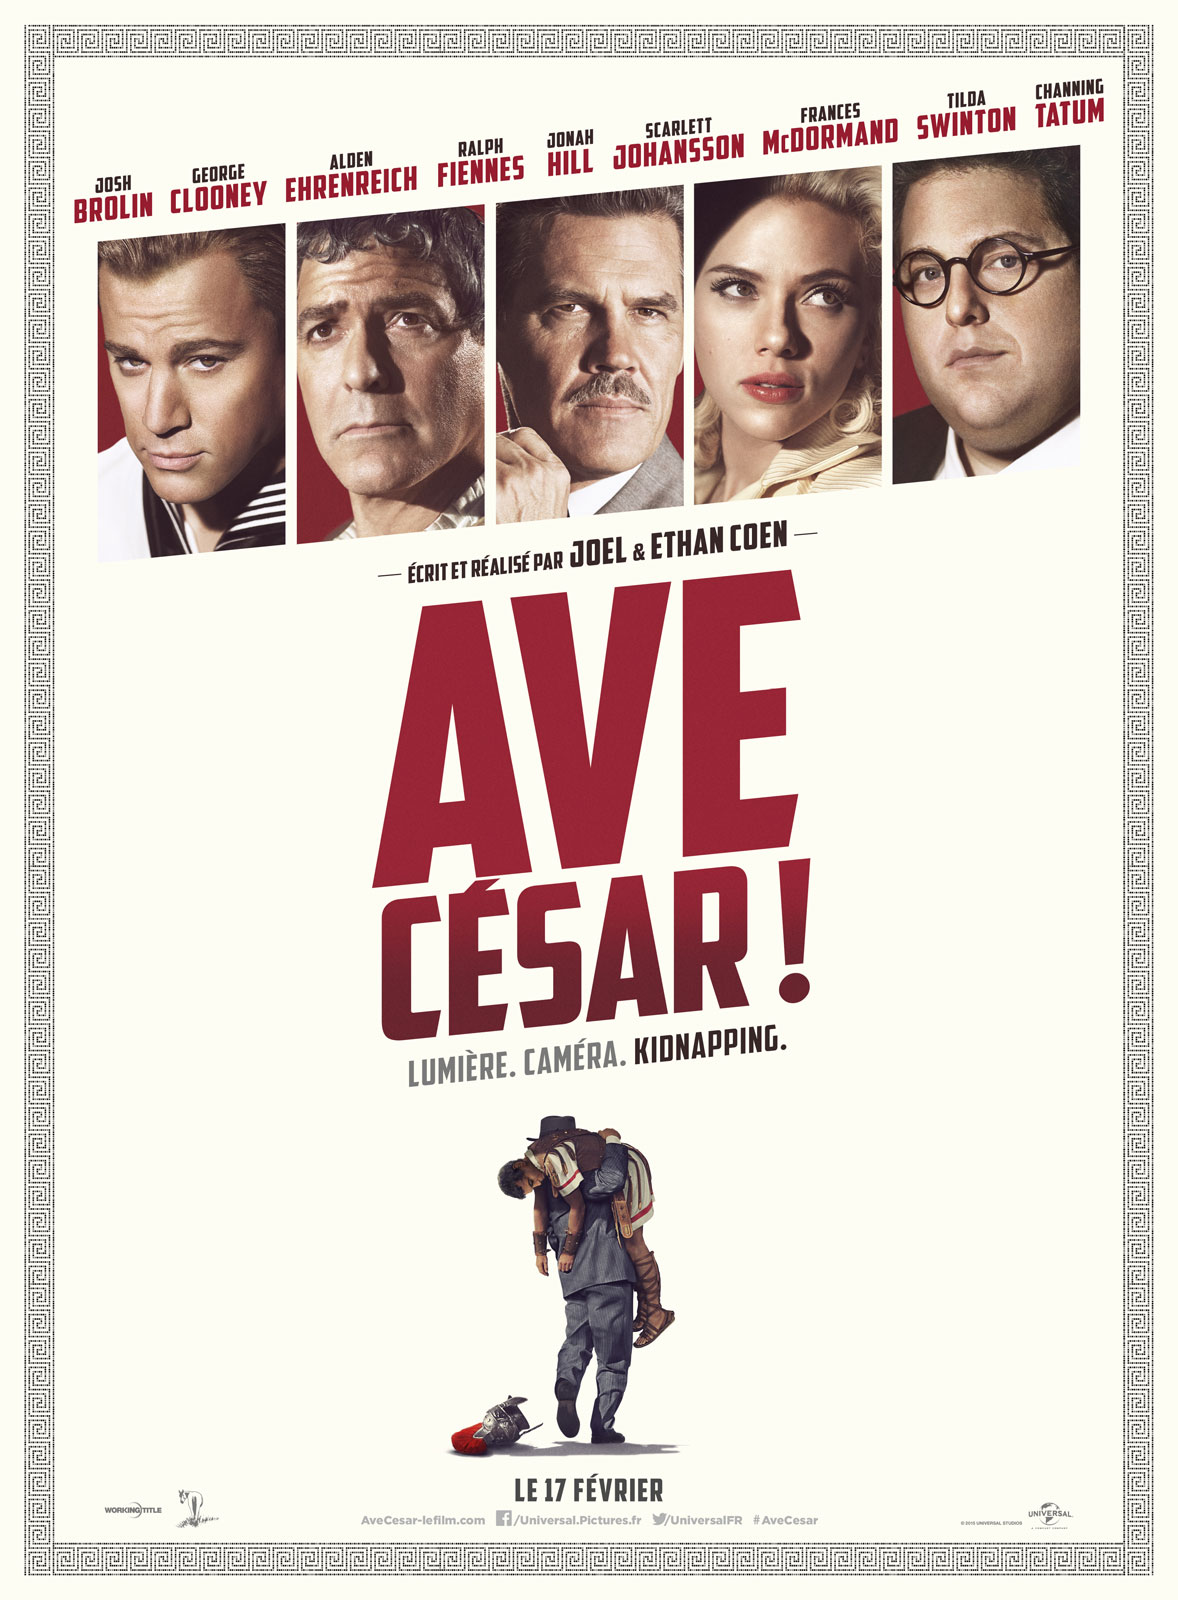 Ave, César! Legendado